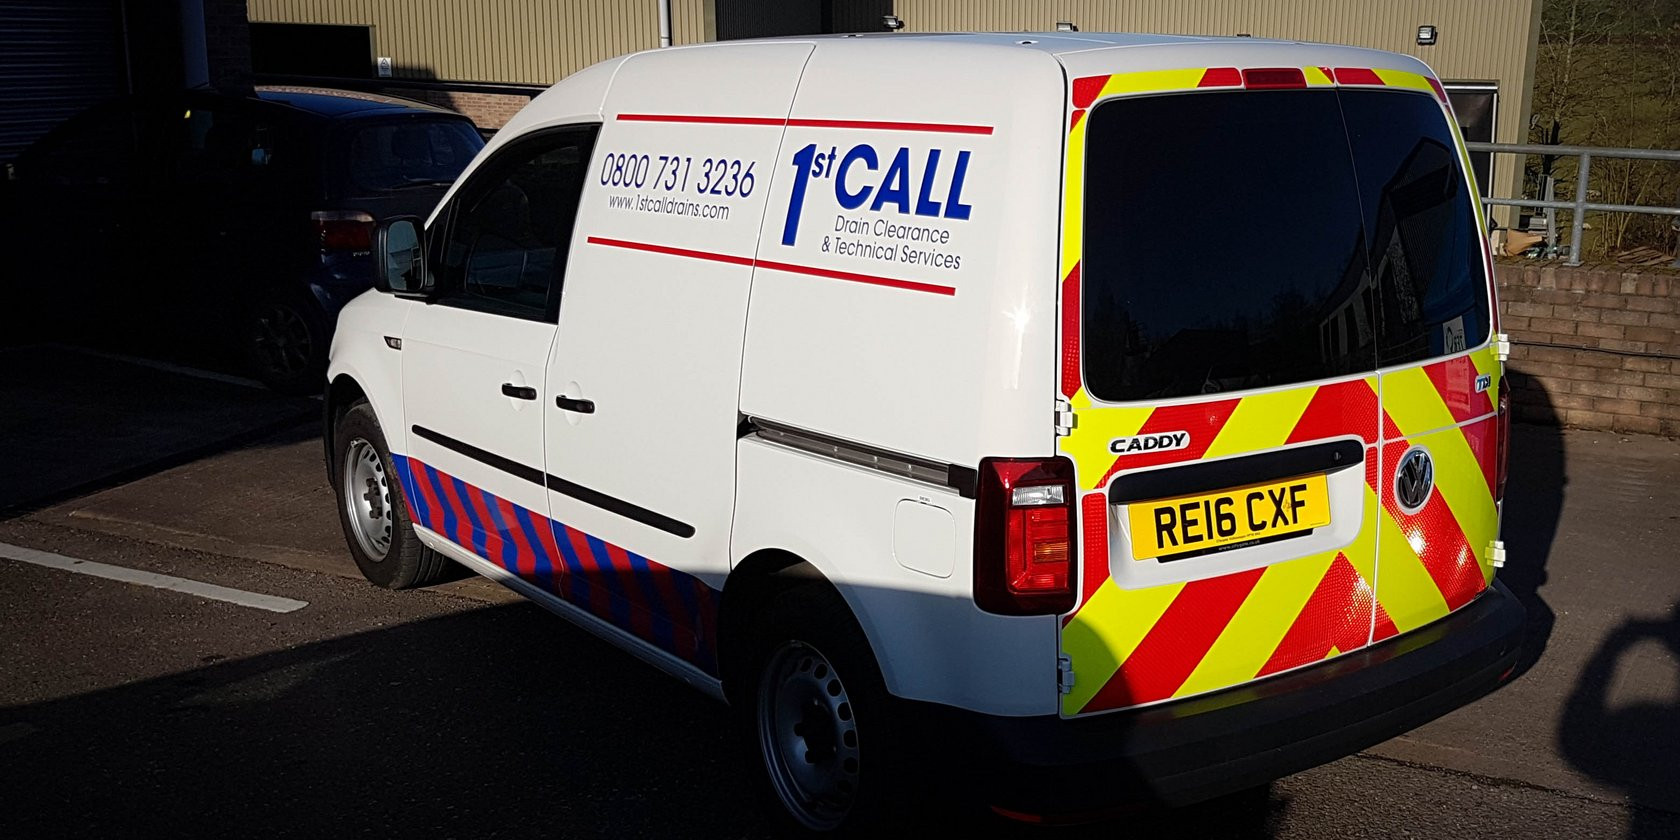 Vehicle Livery for 1st Call